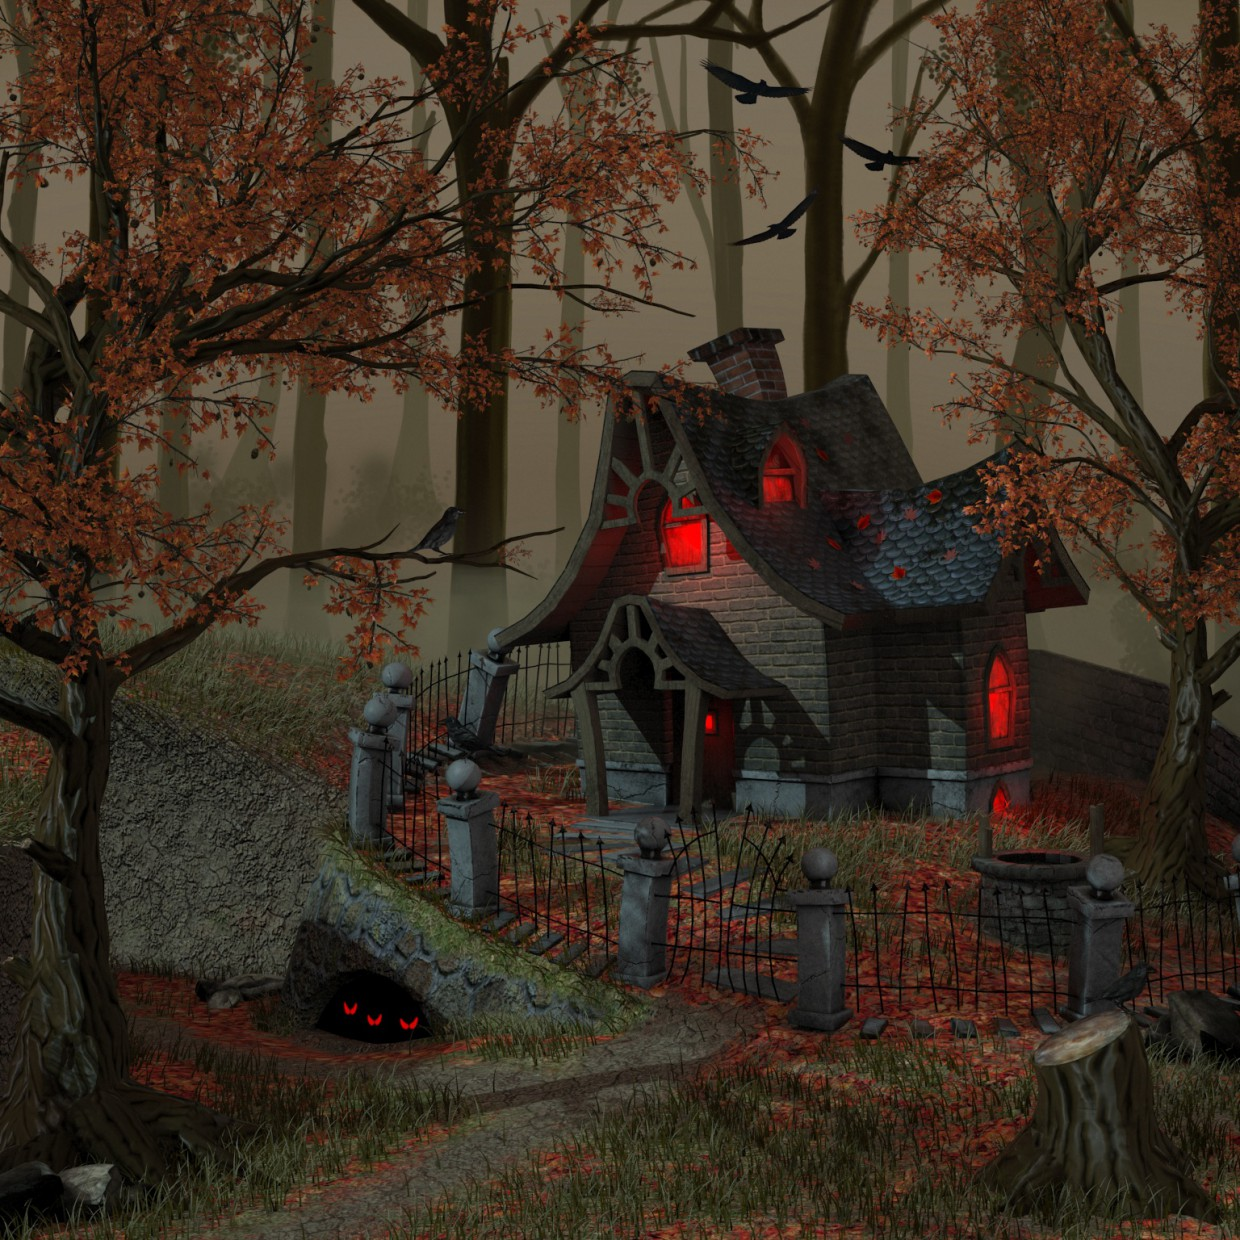 3d visualization of the project in the Witch house 3d max, render vray 3.0 of llleeSh